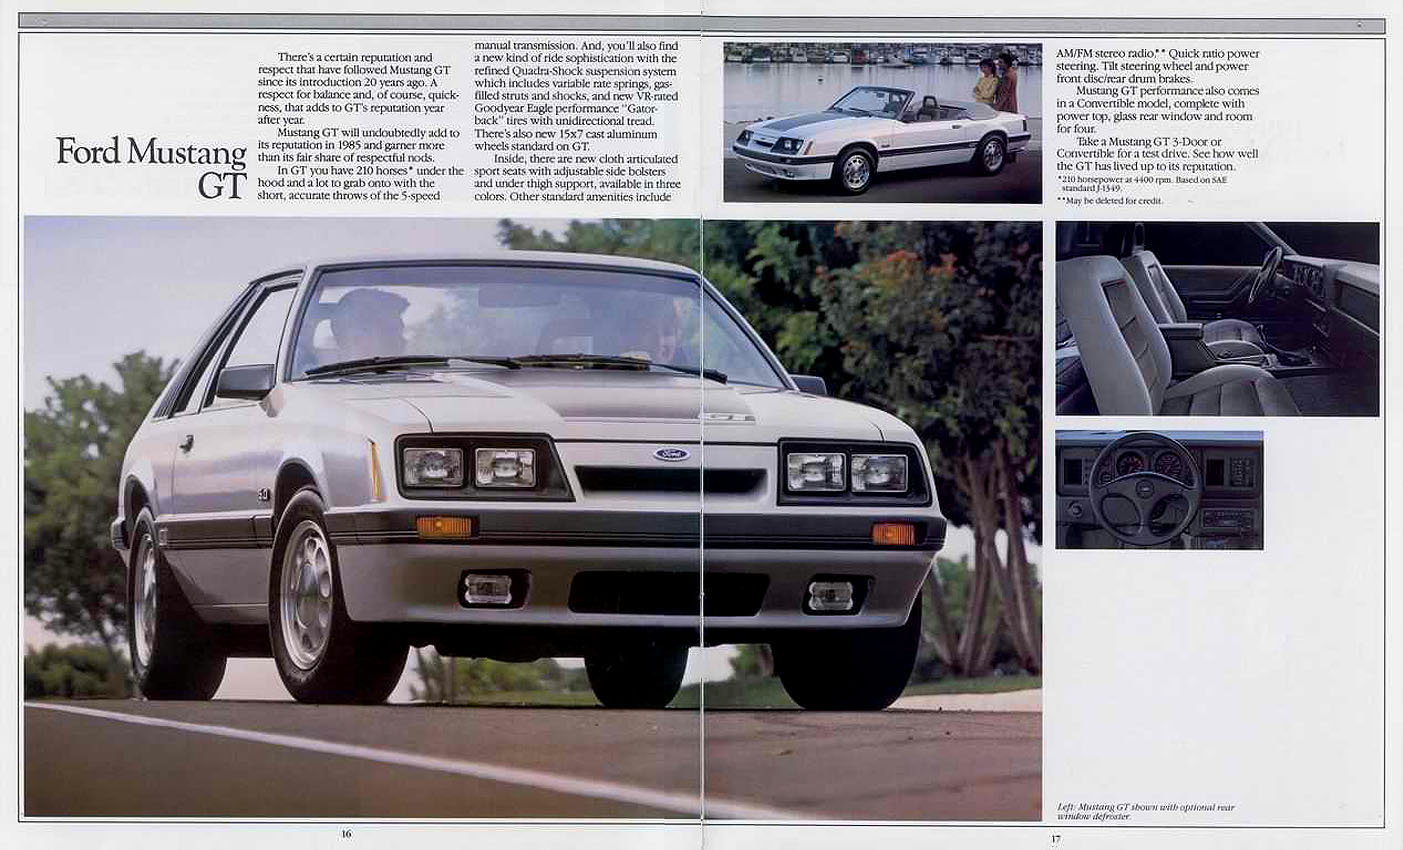 80s 90s Camaro Mustang Manual Transmission Corvette Chevy Ford 1964 Brochure Automotive Sports Cars Sedans Coupes Suvs Trucks Motorcycles Tickets Dealers